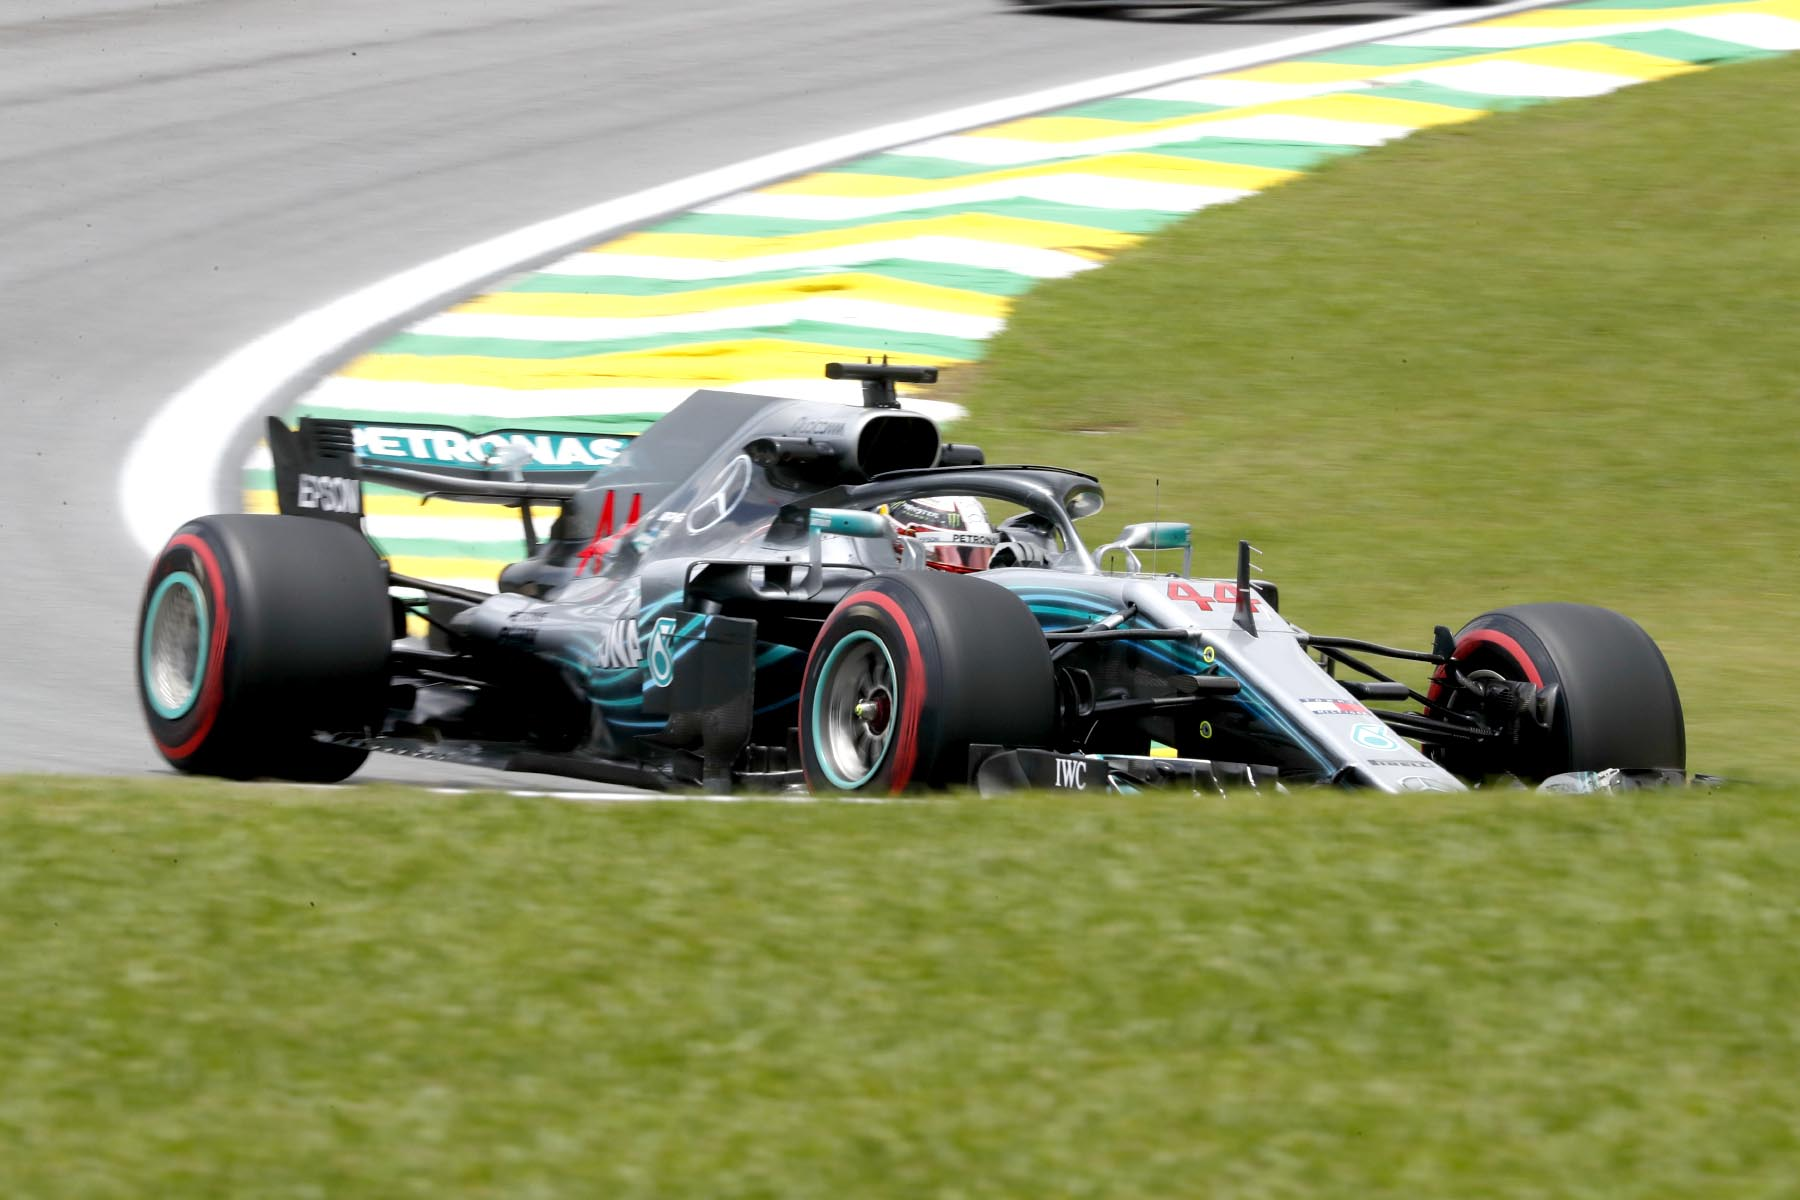 Lewis Hamilton on track at the 2018 Brazilian Grand Prix.